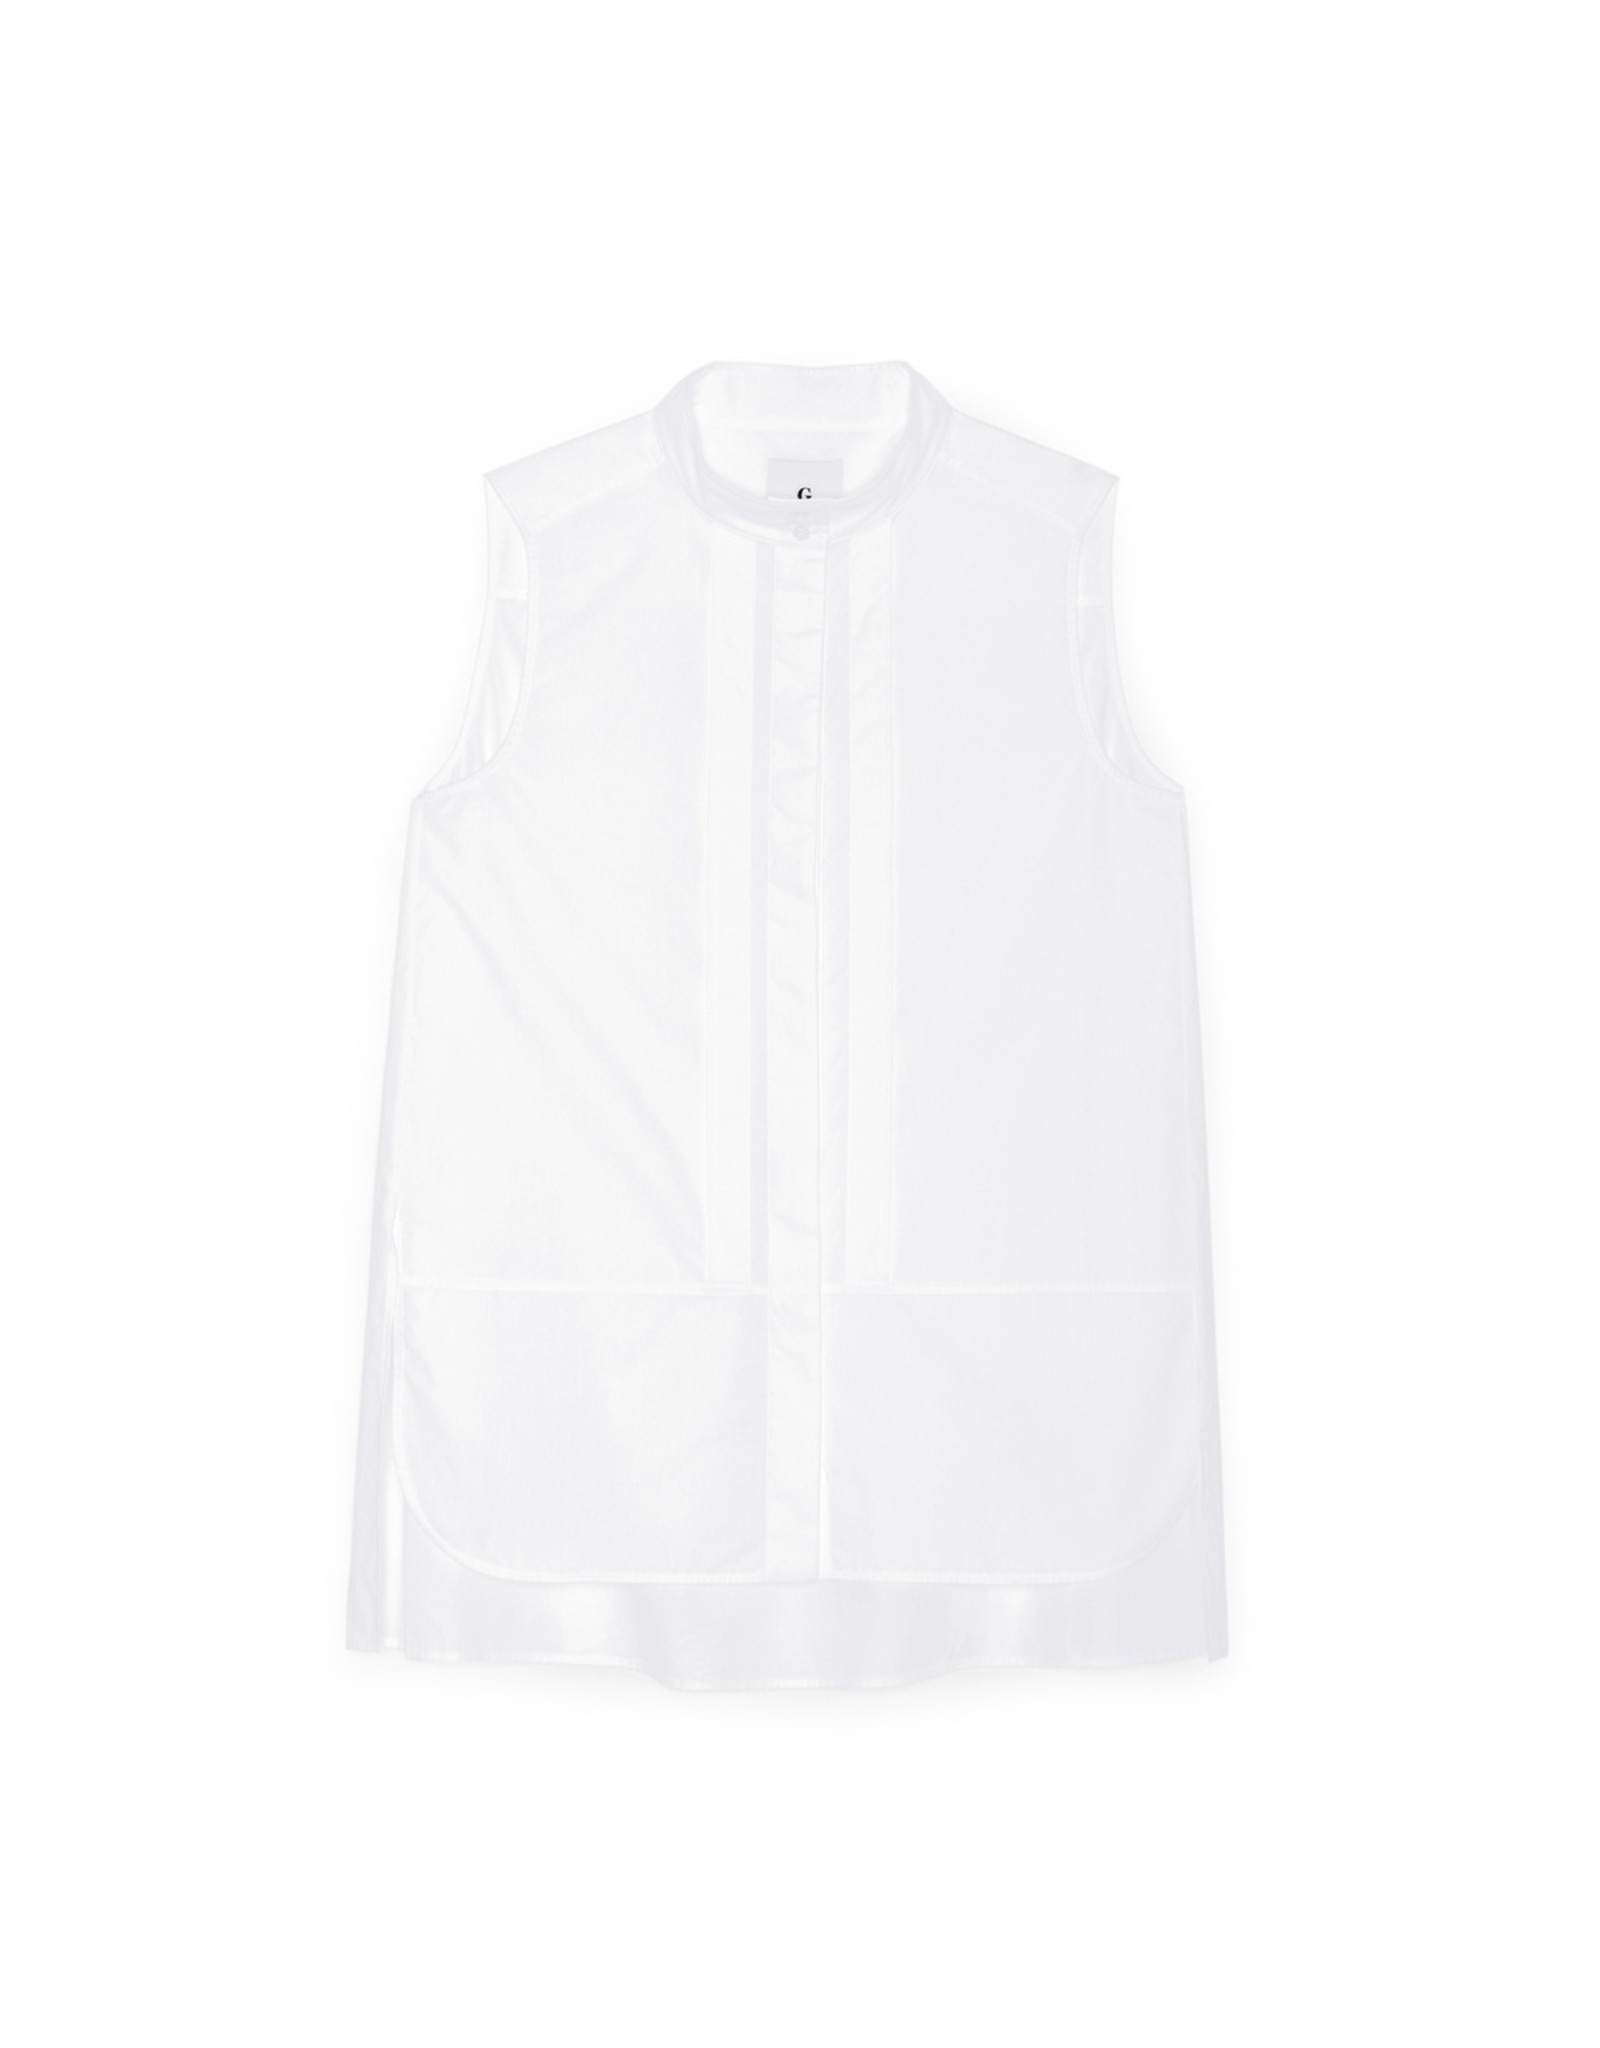 G. Label G. Label Casey Pleat Collar Shirt (Color: White, Size:4)